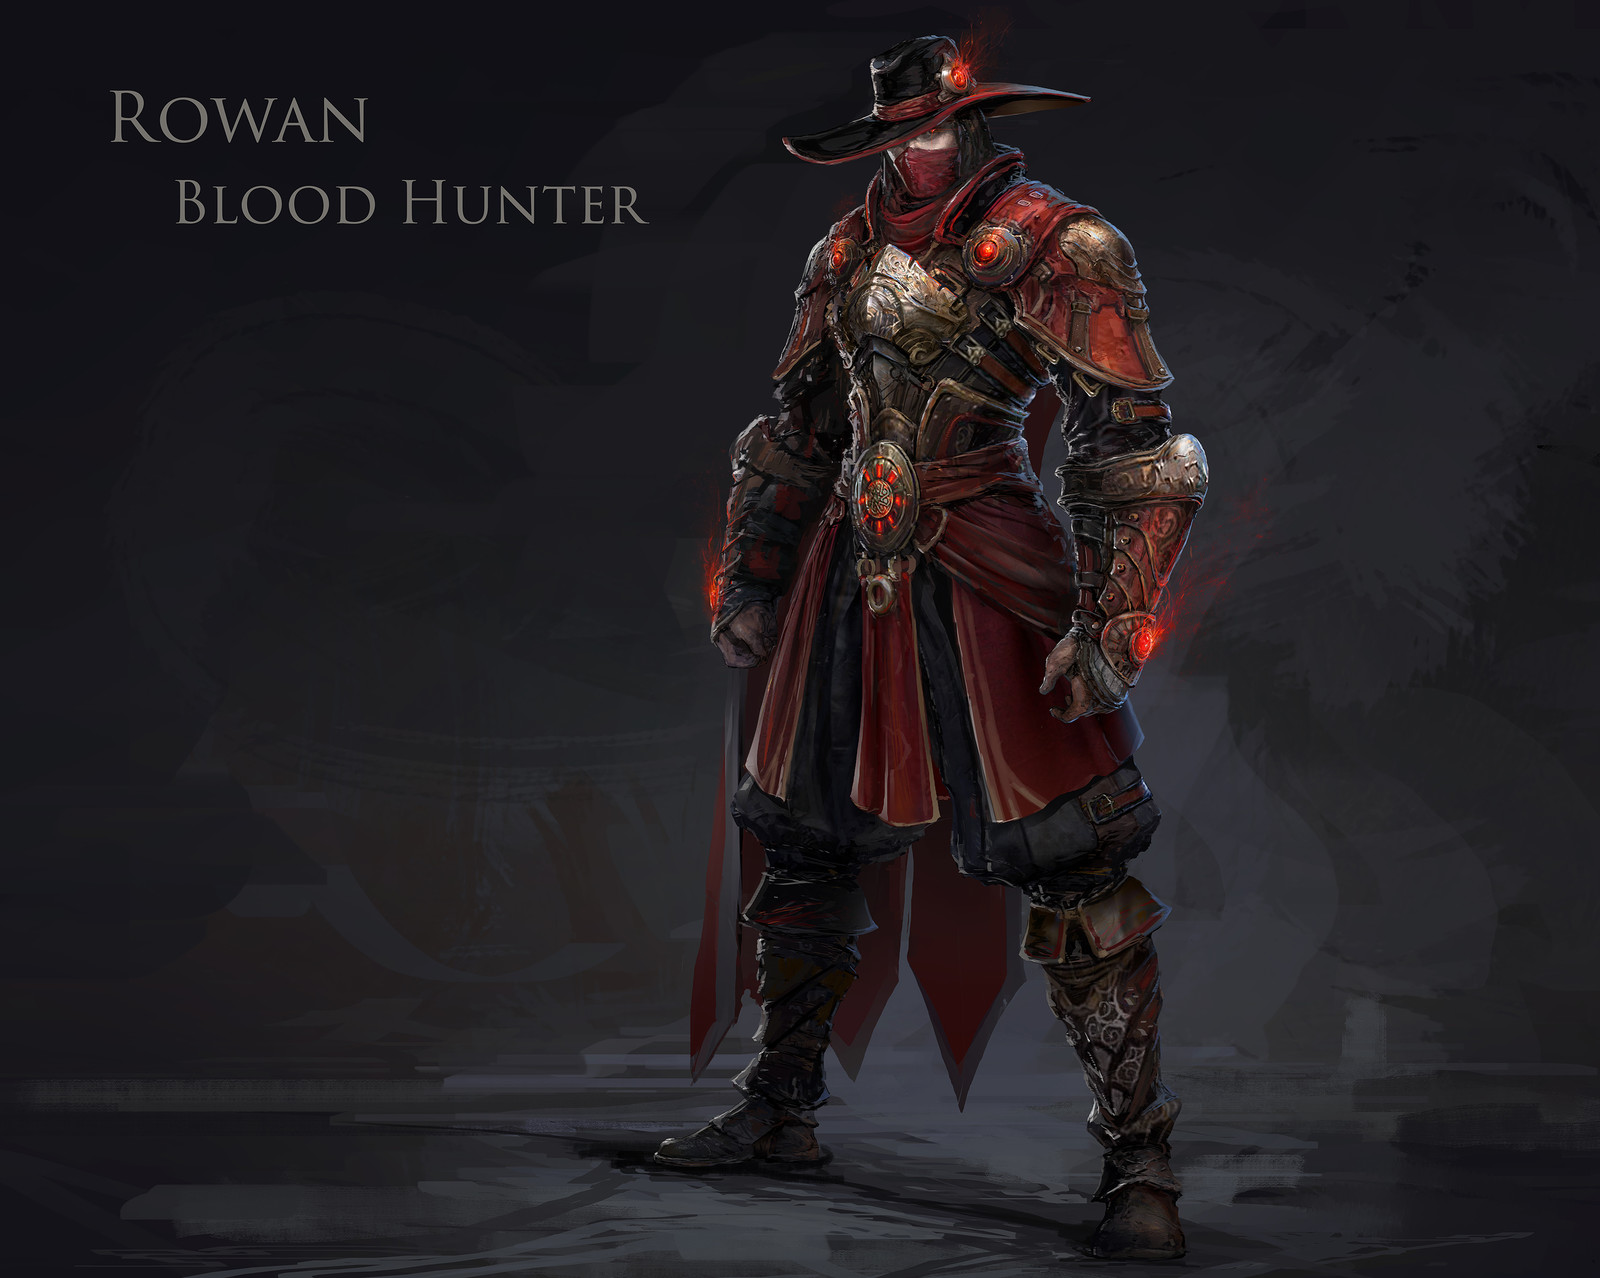 Rowan Blood Hunter